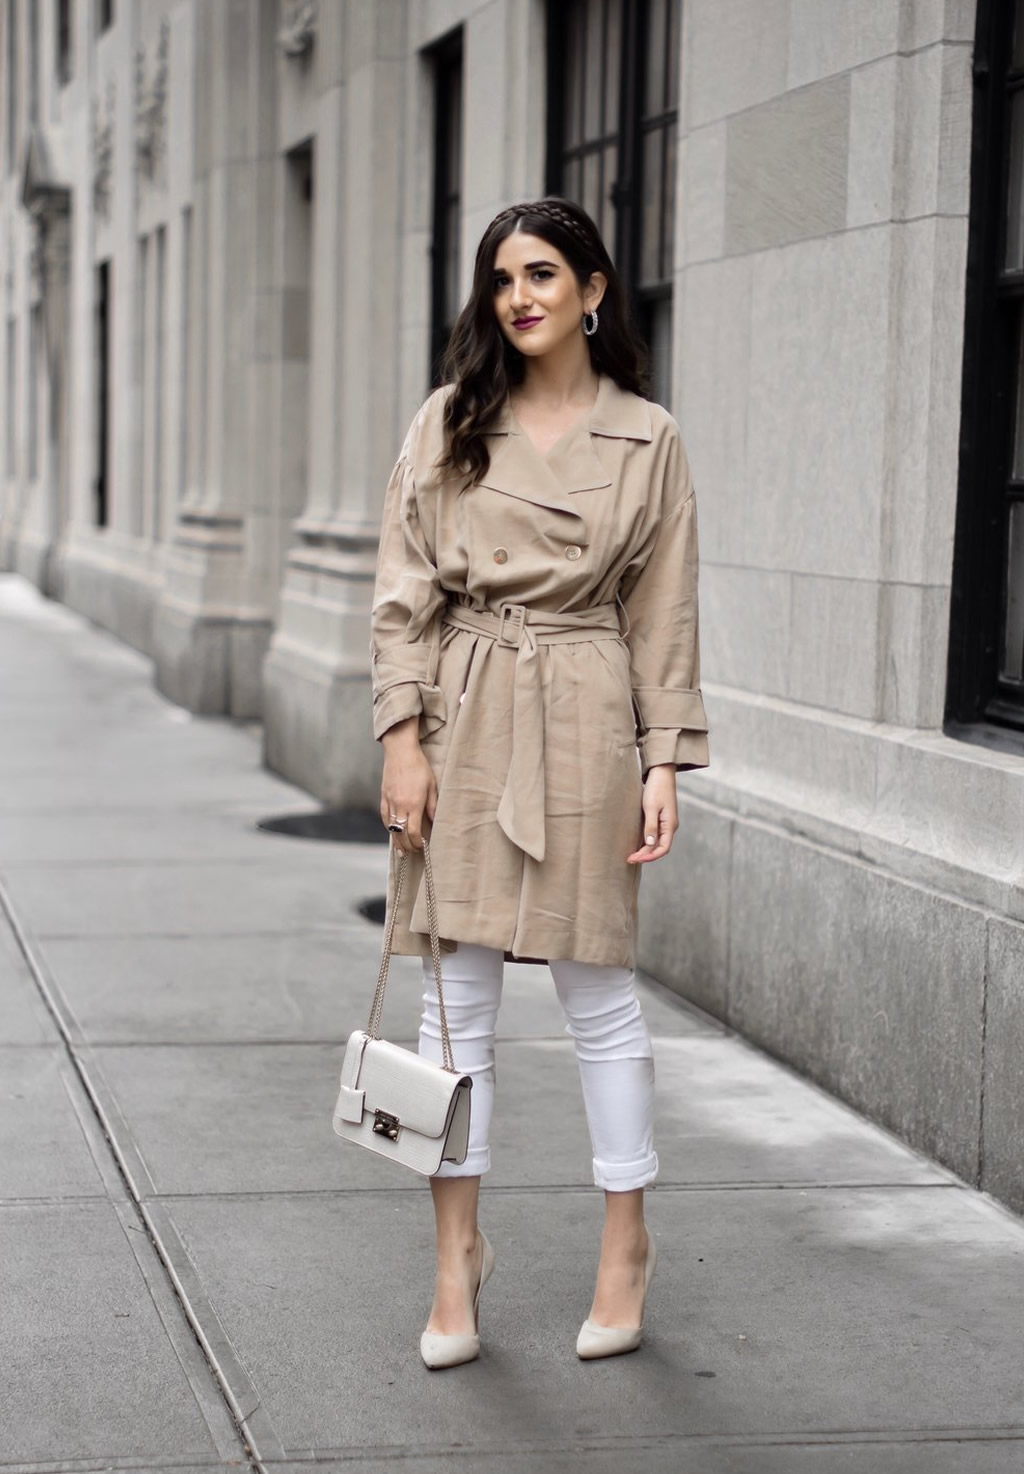 Looks Com Trench Coat, look trench coat, como usar trench coat, opções de look trench coat, trench coat preto, looks com trench coat, look trench coat, look de inverno